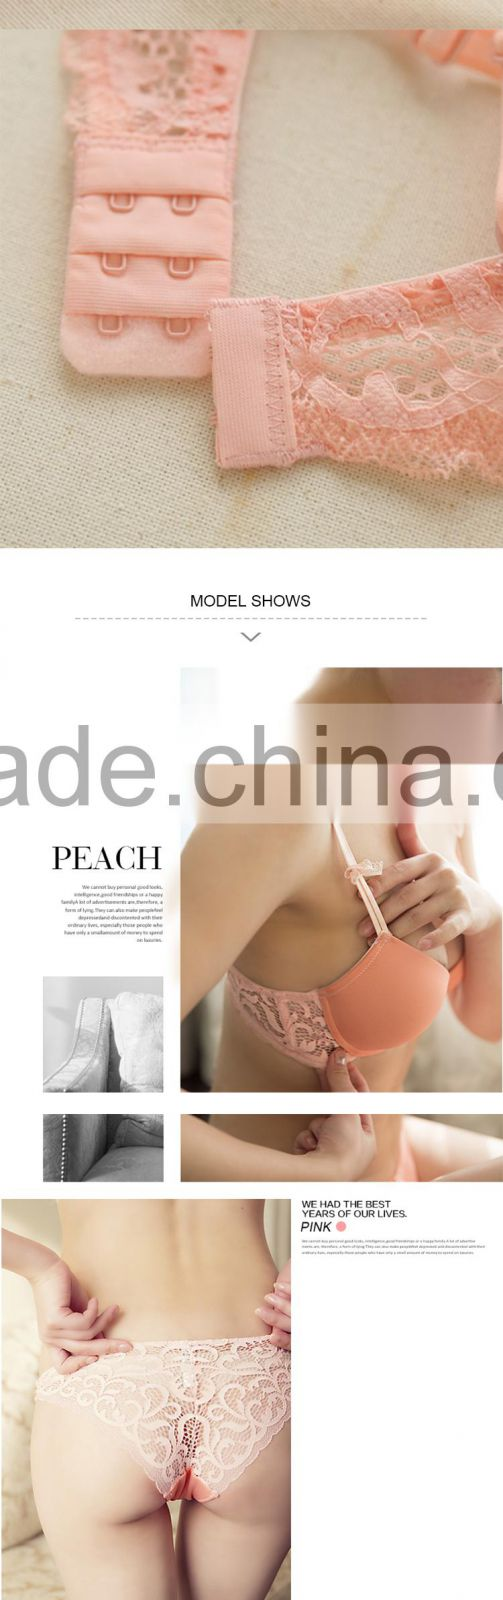 bfe7a68461 ... HSZ-5001 Wholesale High Quality Women Underwear Pink Sexy Fancy Bra  Panty Set for Women